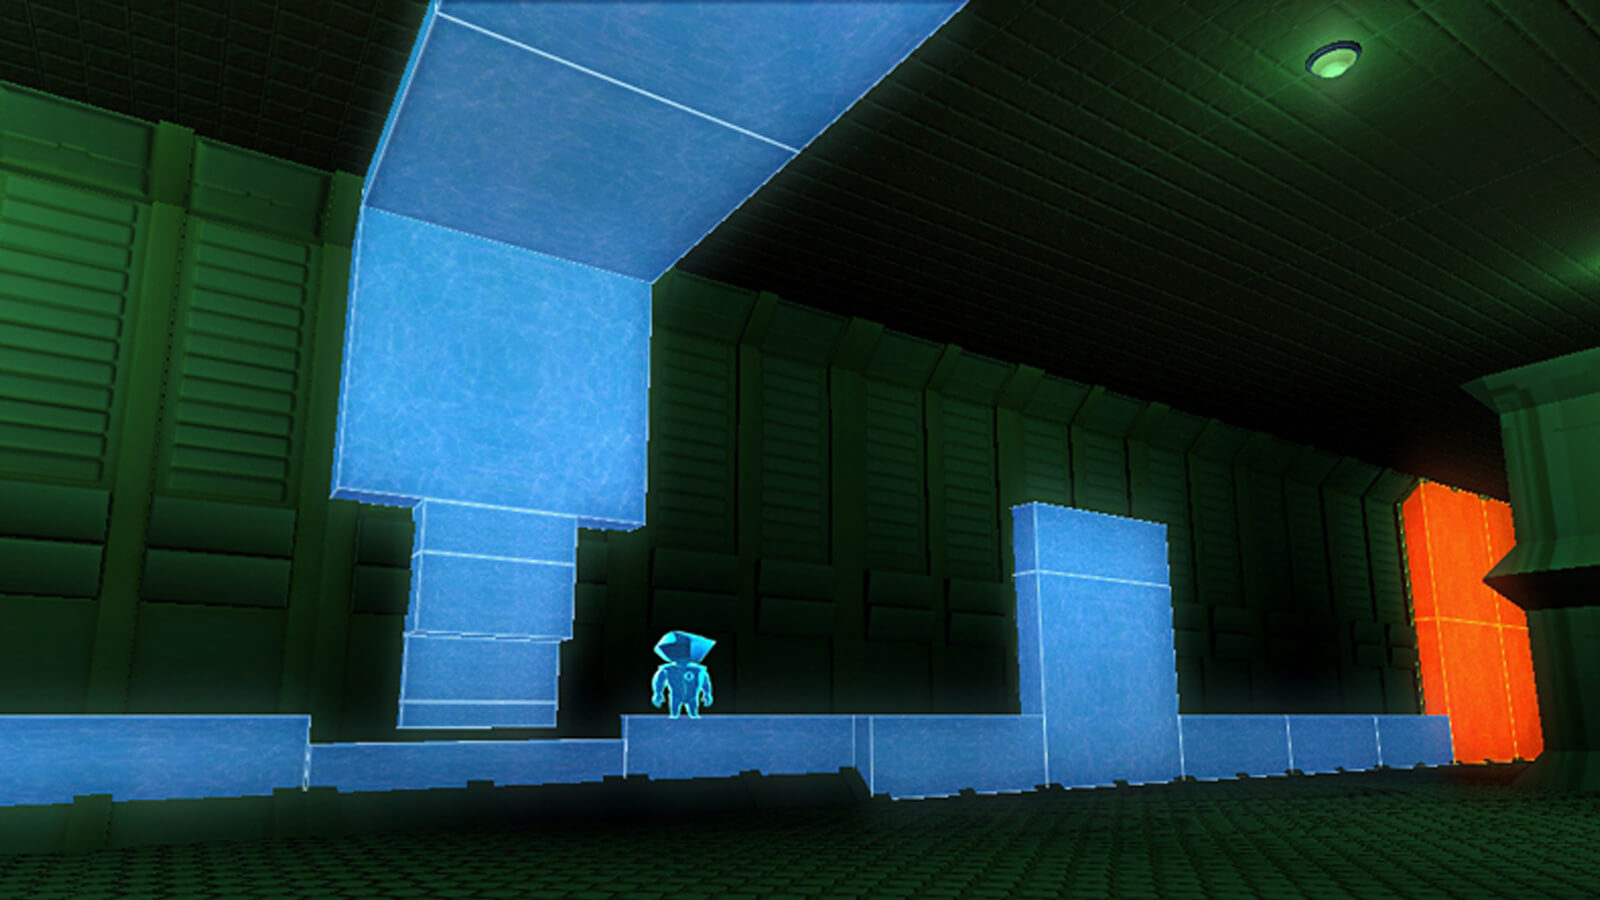 The player's avatar stands on blue blocks in a green-tinted room